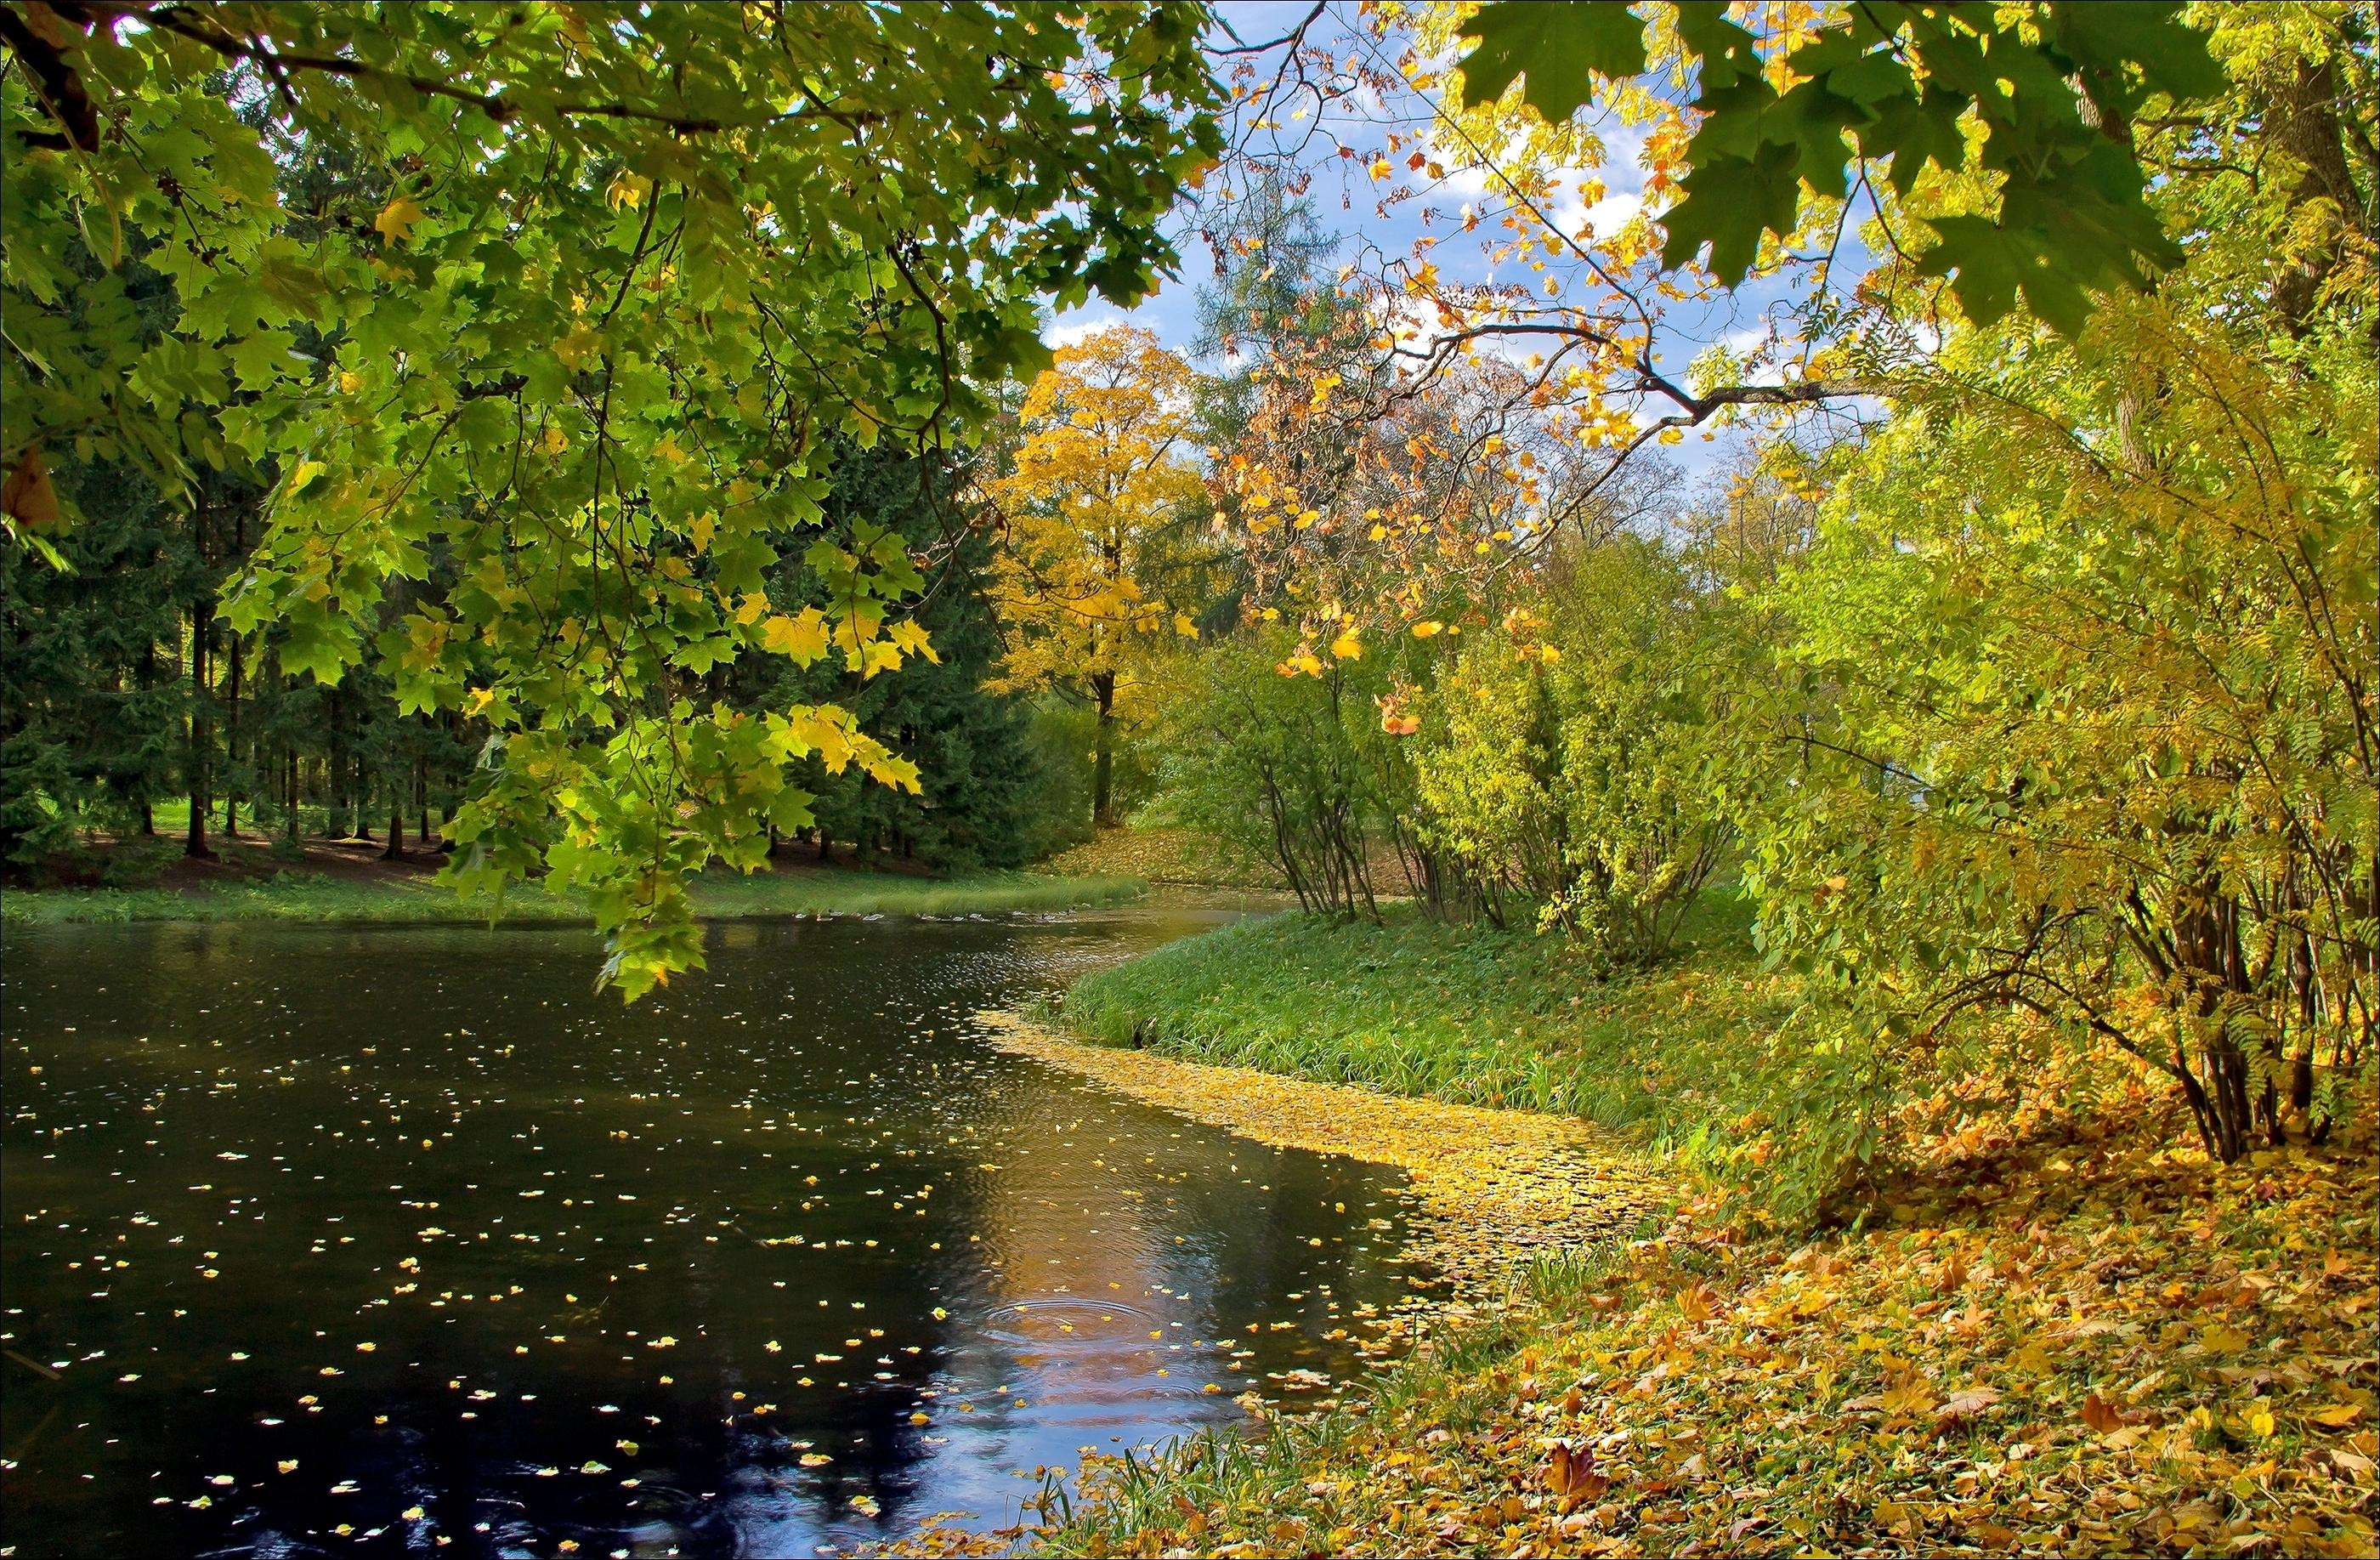 lake-autumn-leaves.jpg